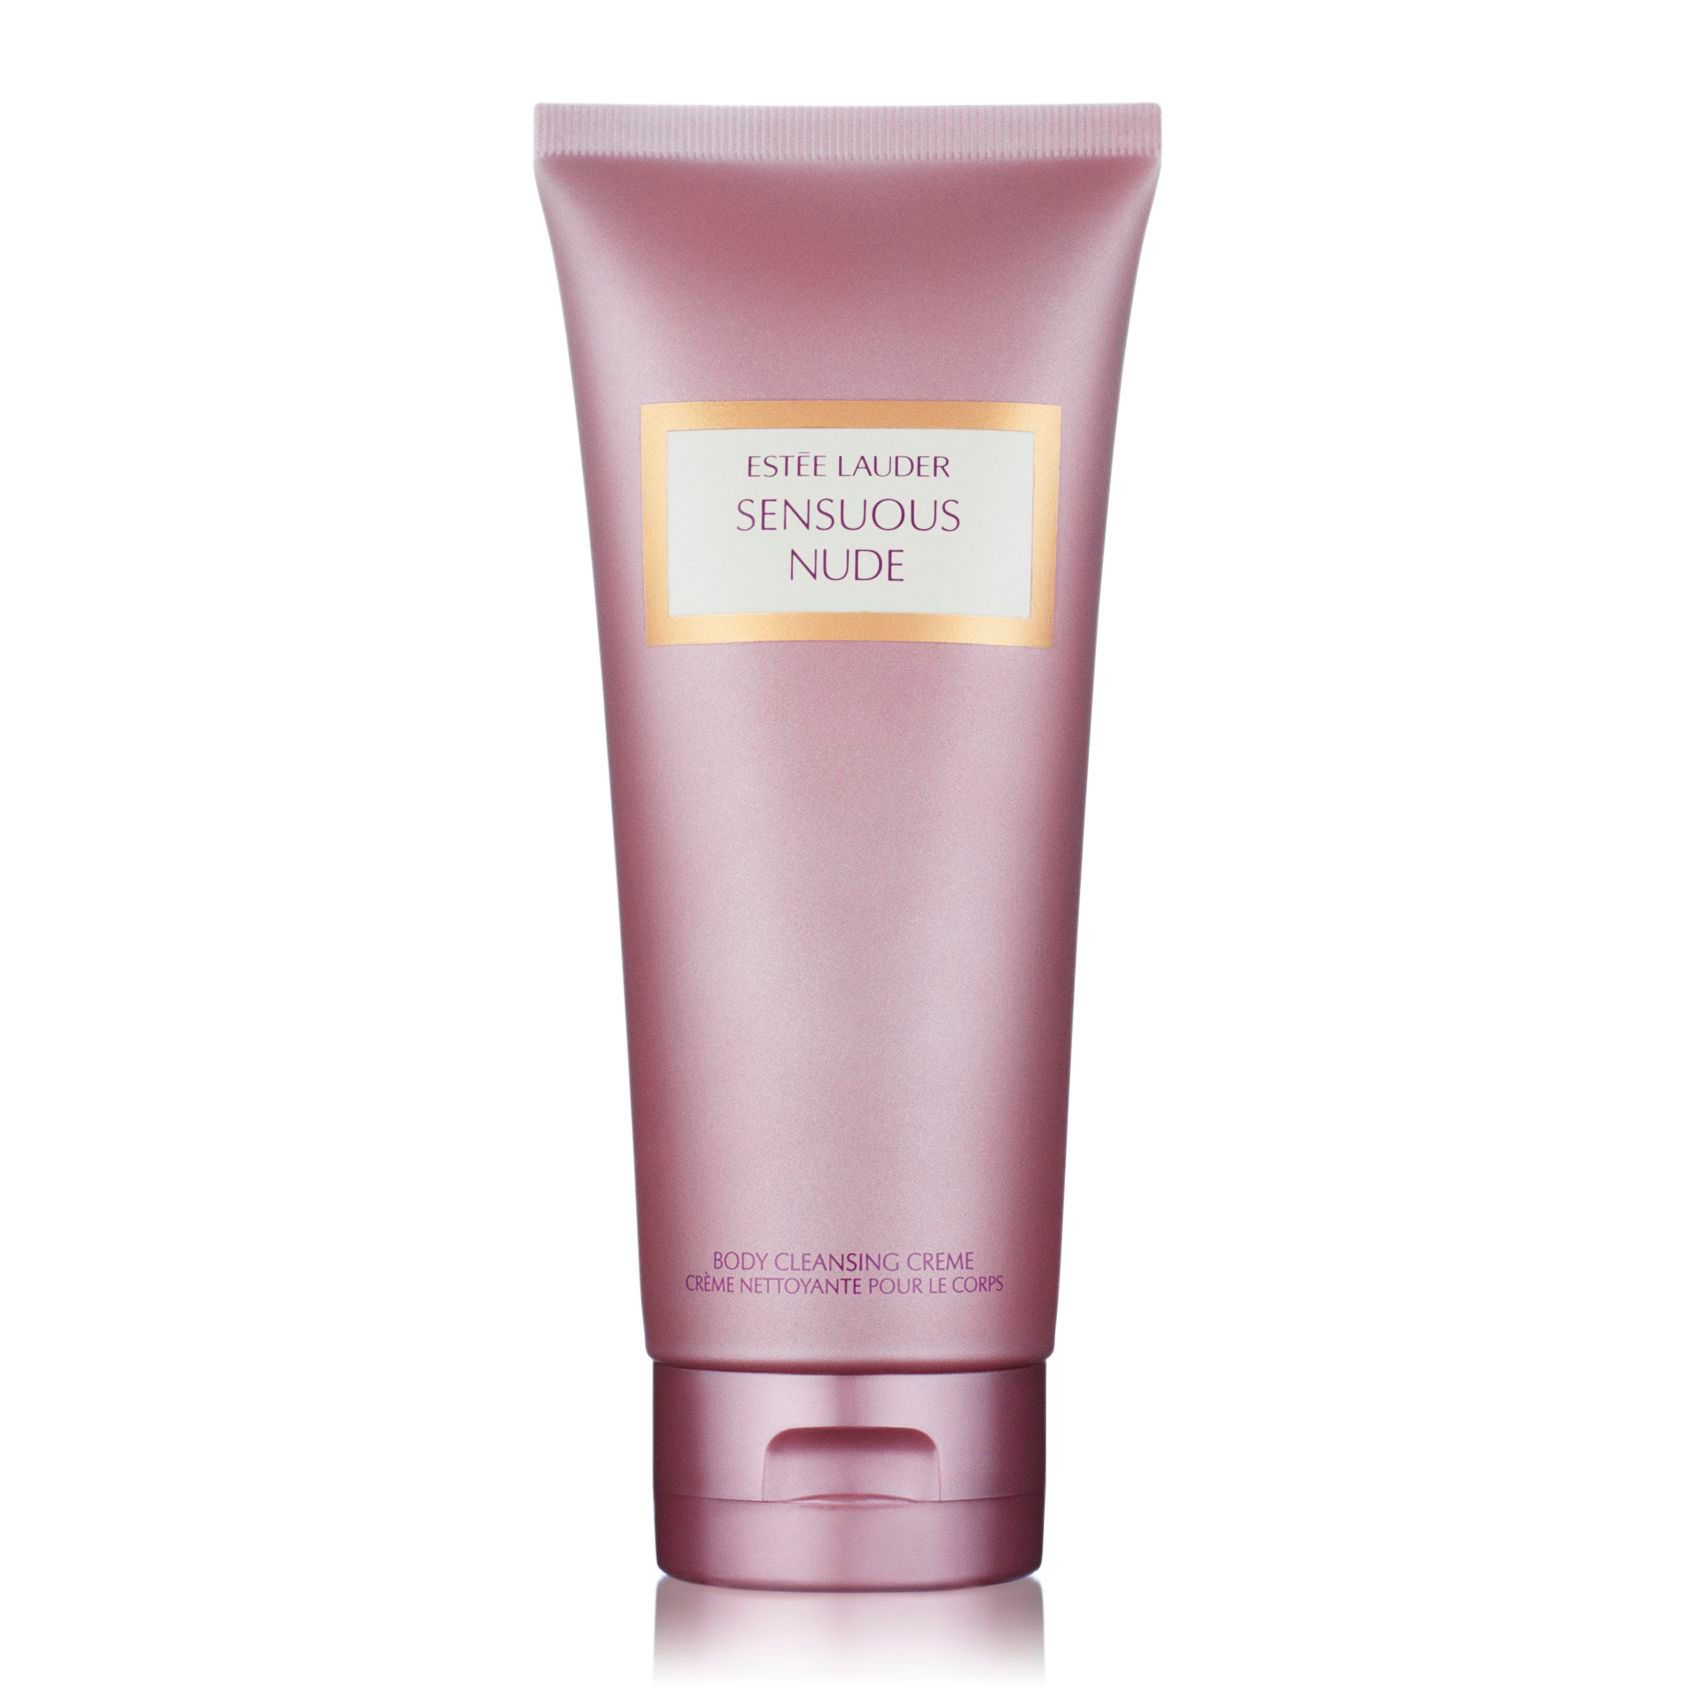 Sensuous Nude Body Cleansing Crème 200ml